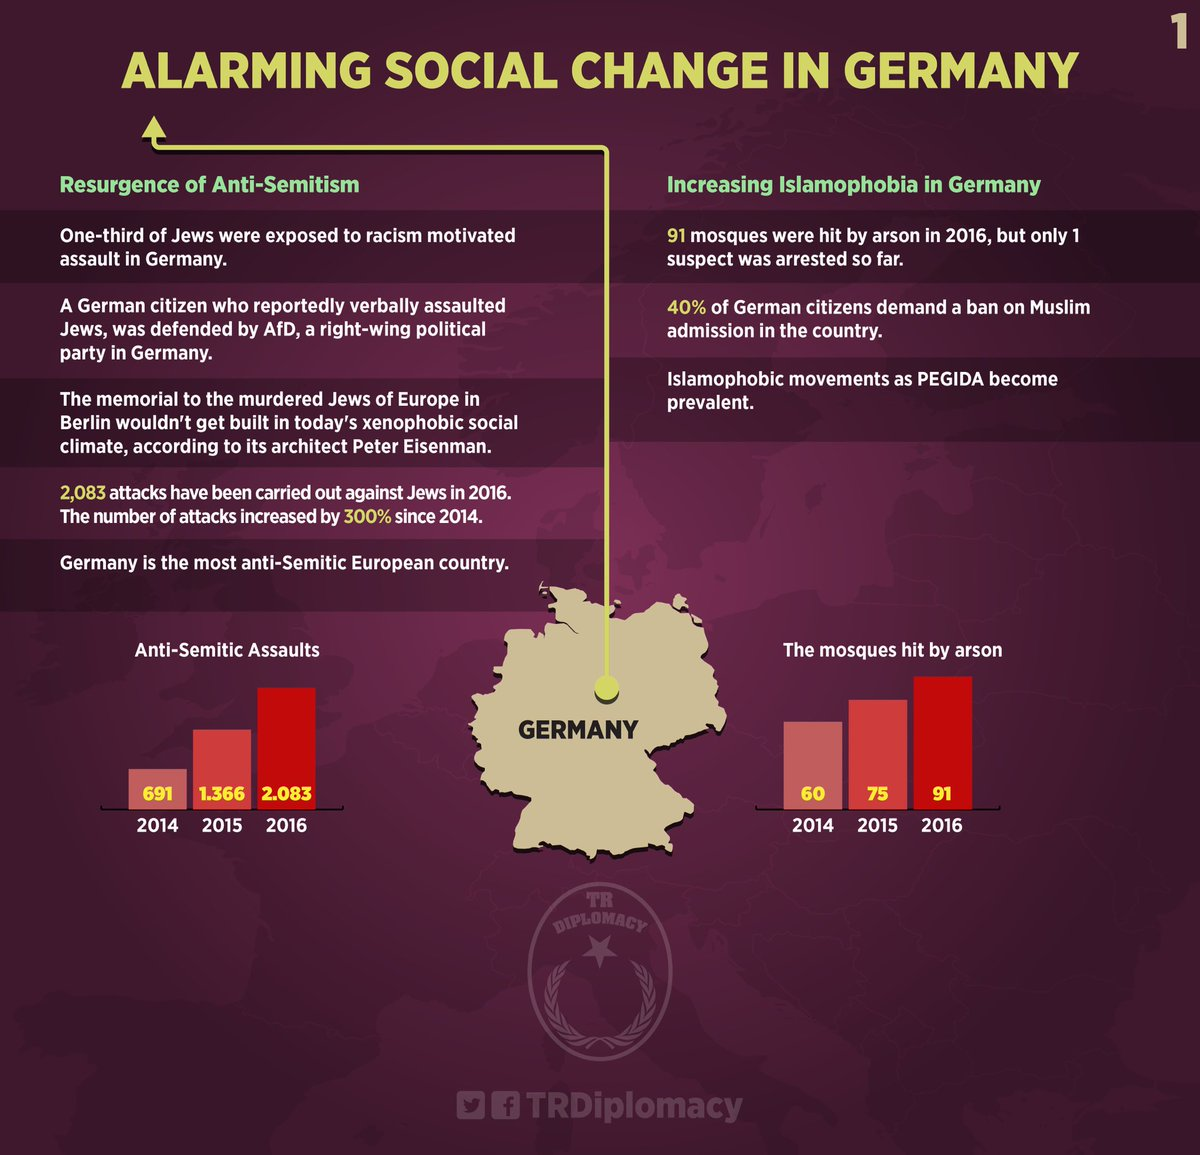 Alarming social change in Germany